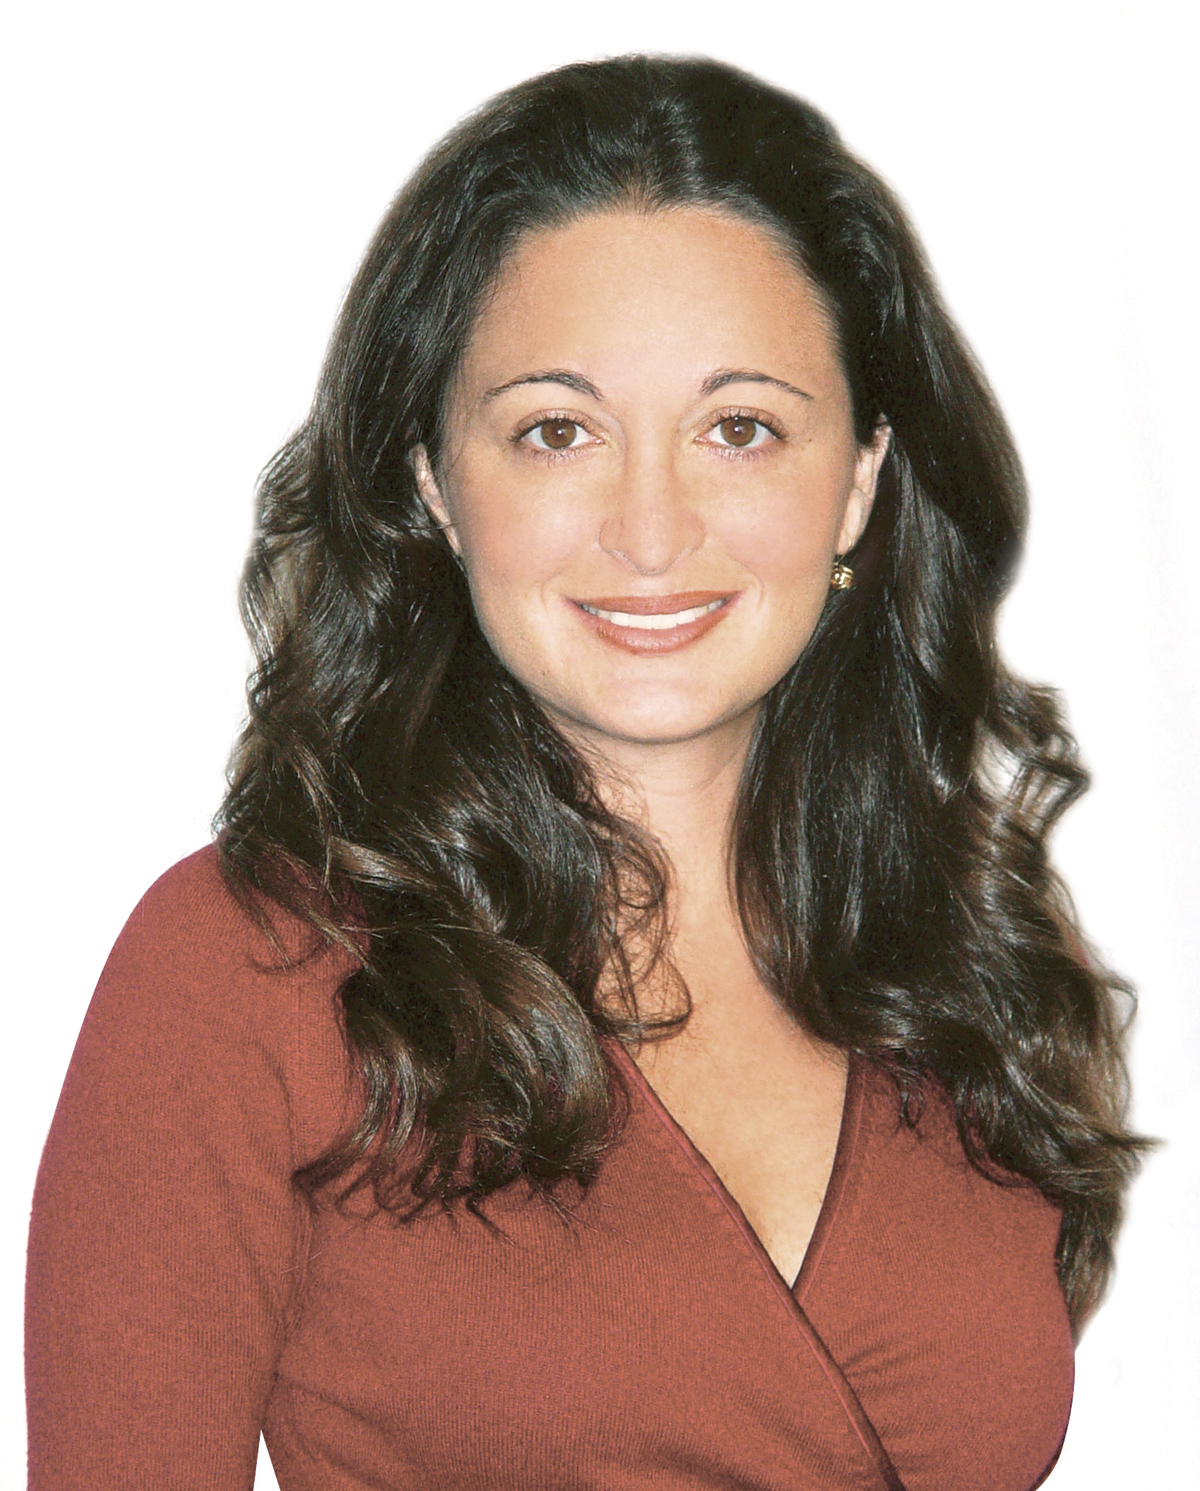 Condo Rules on Parking - How I Got My Parking Space Back Professor Real Estate Suzanne Hollander